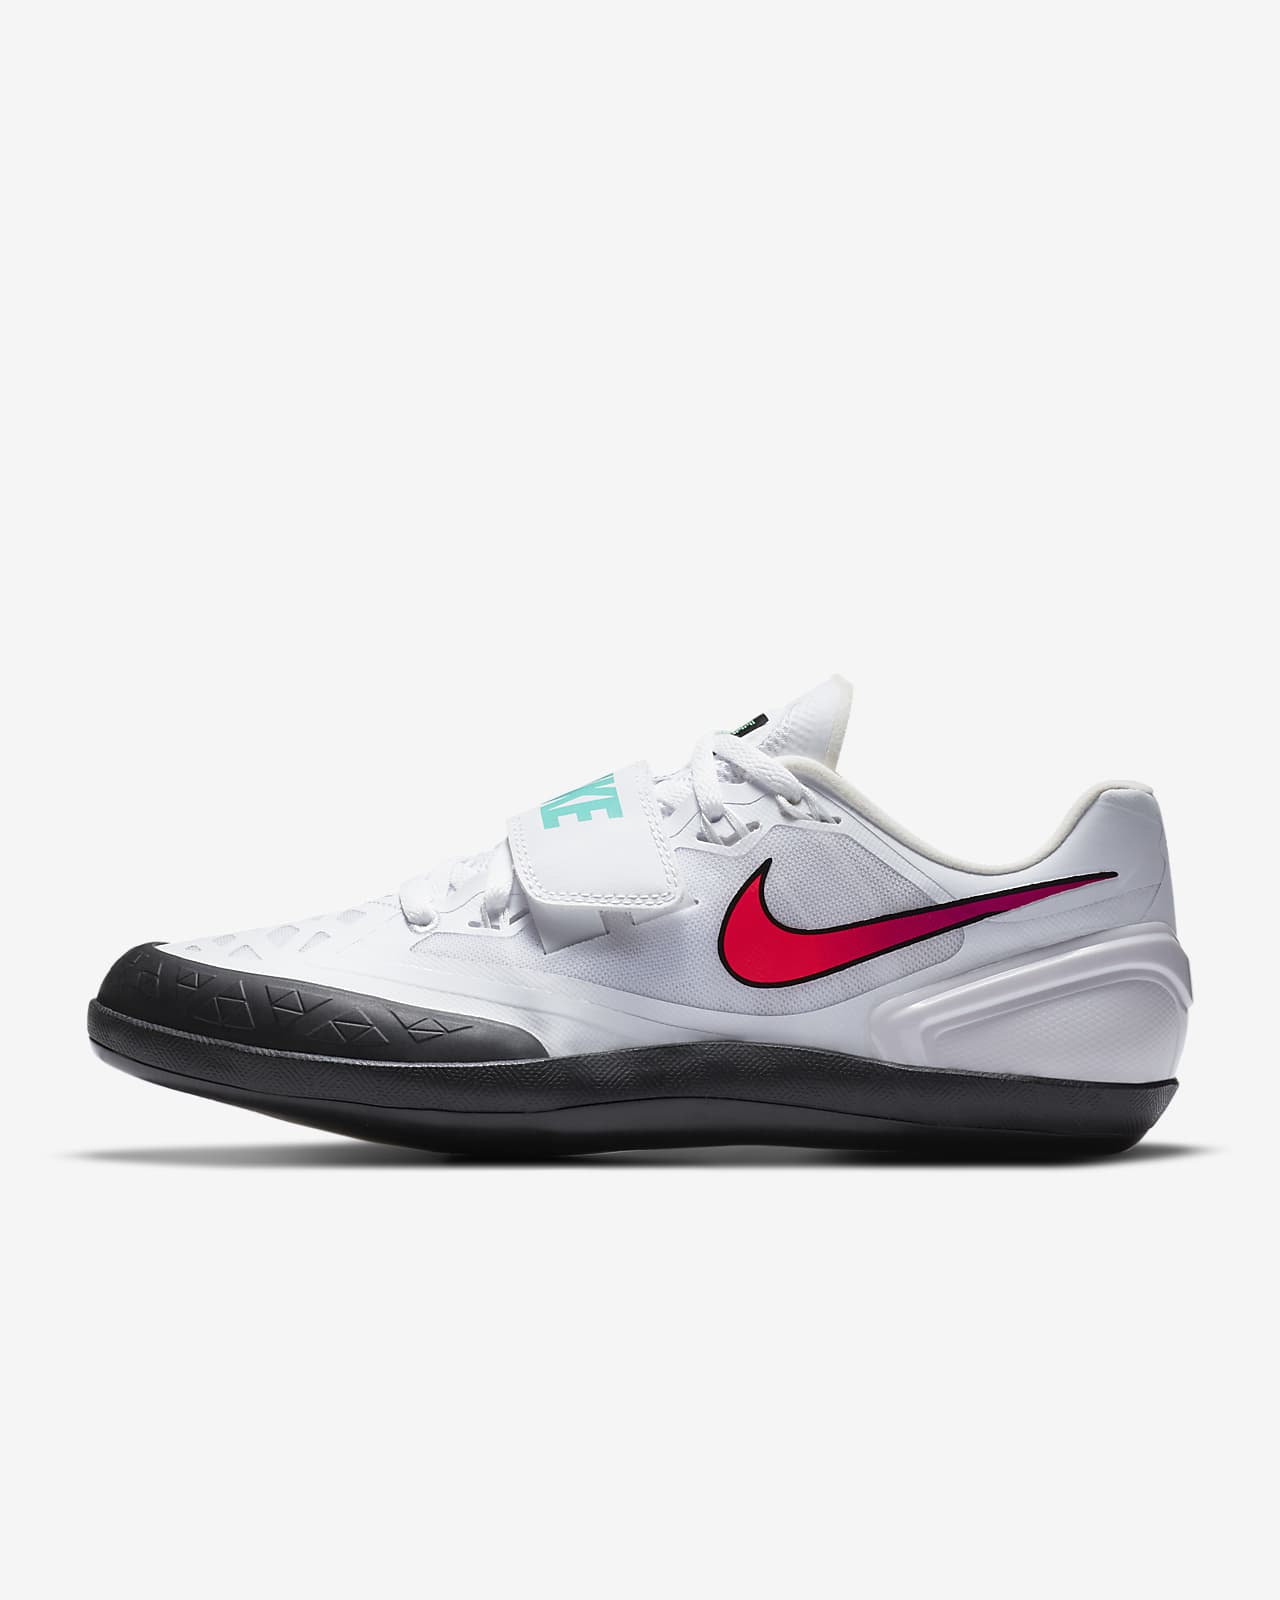 Nike Zoom Rotational 6 Running Shoes